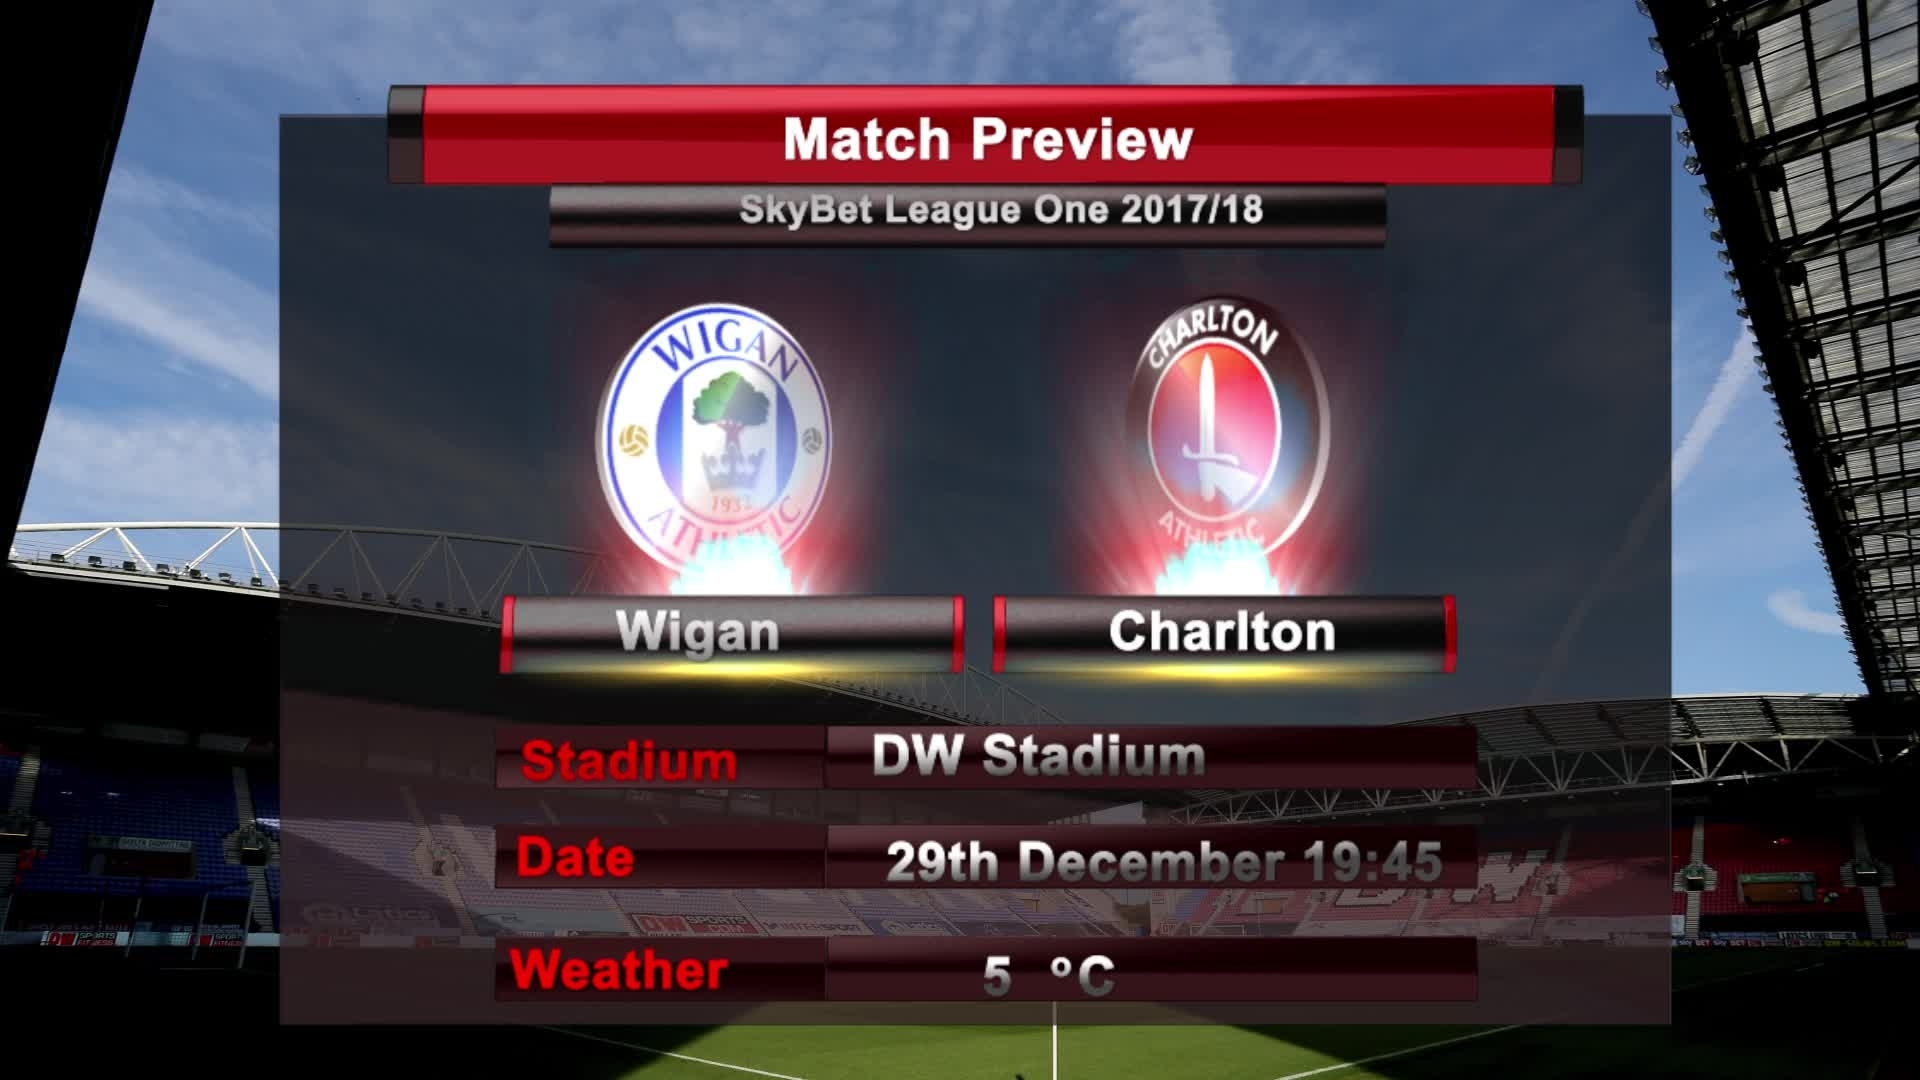 MATCH PREVIEW | Wigan vs Charlton